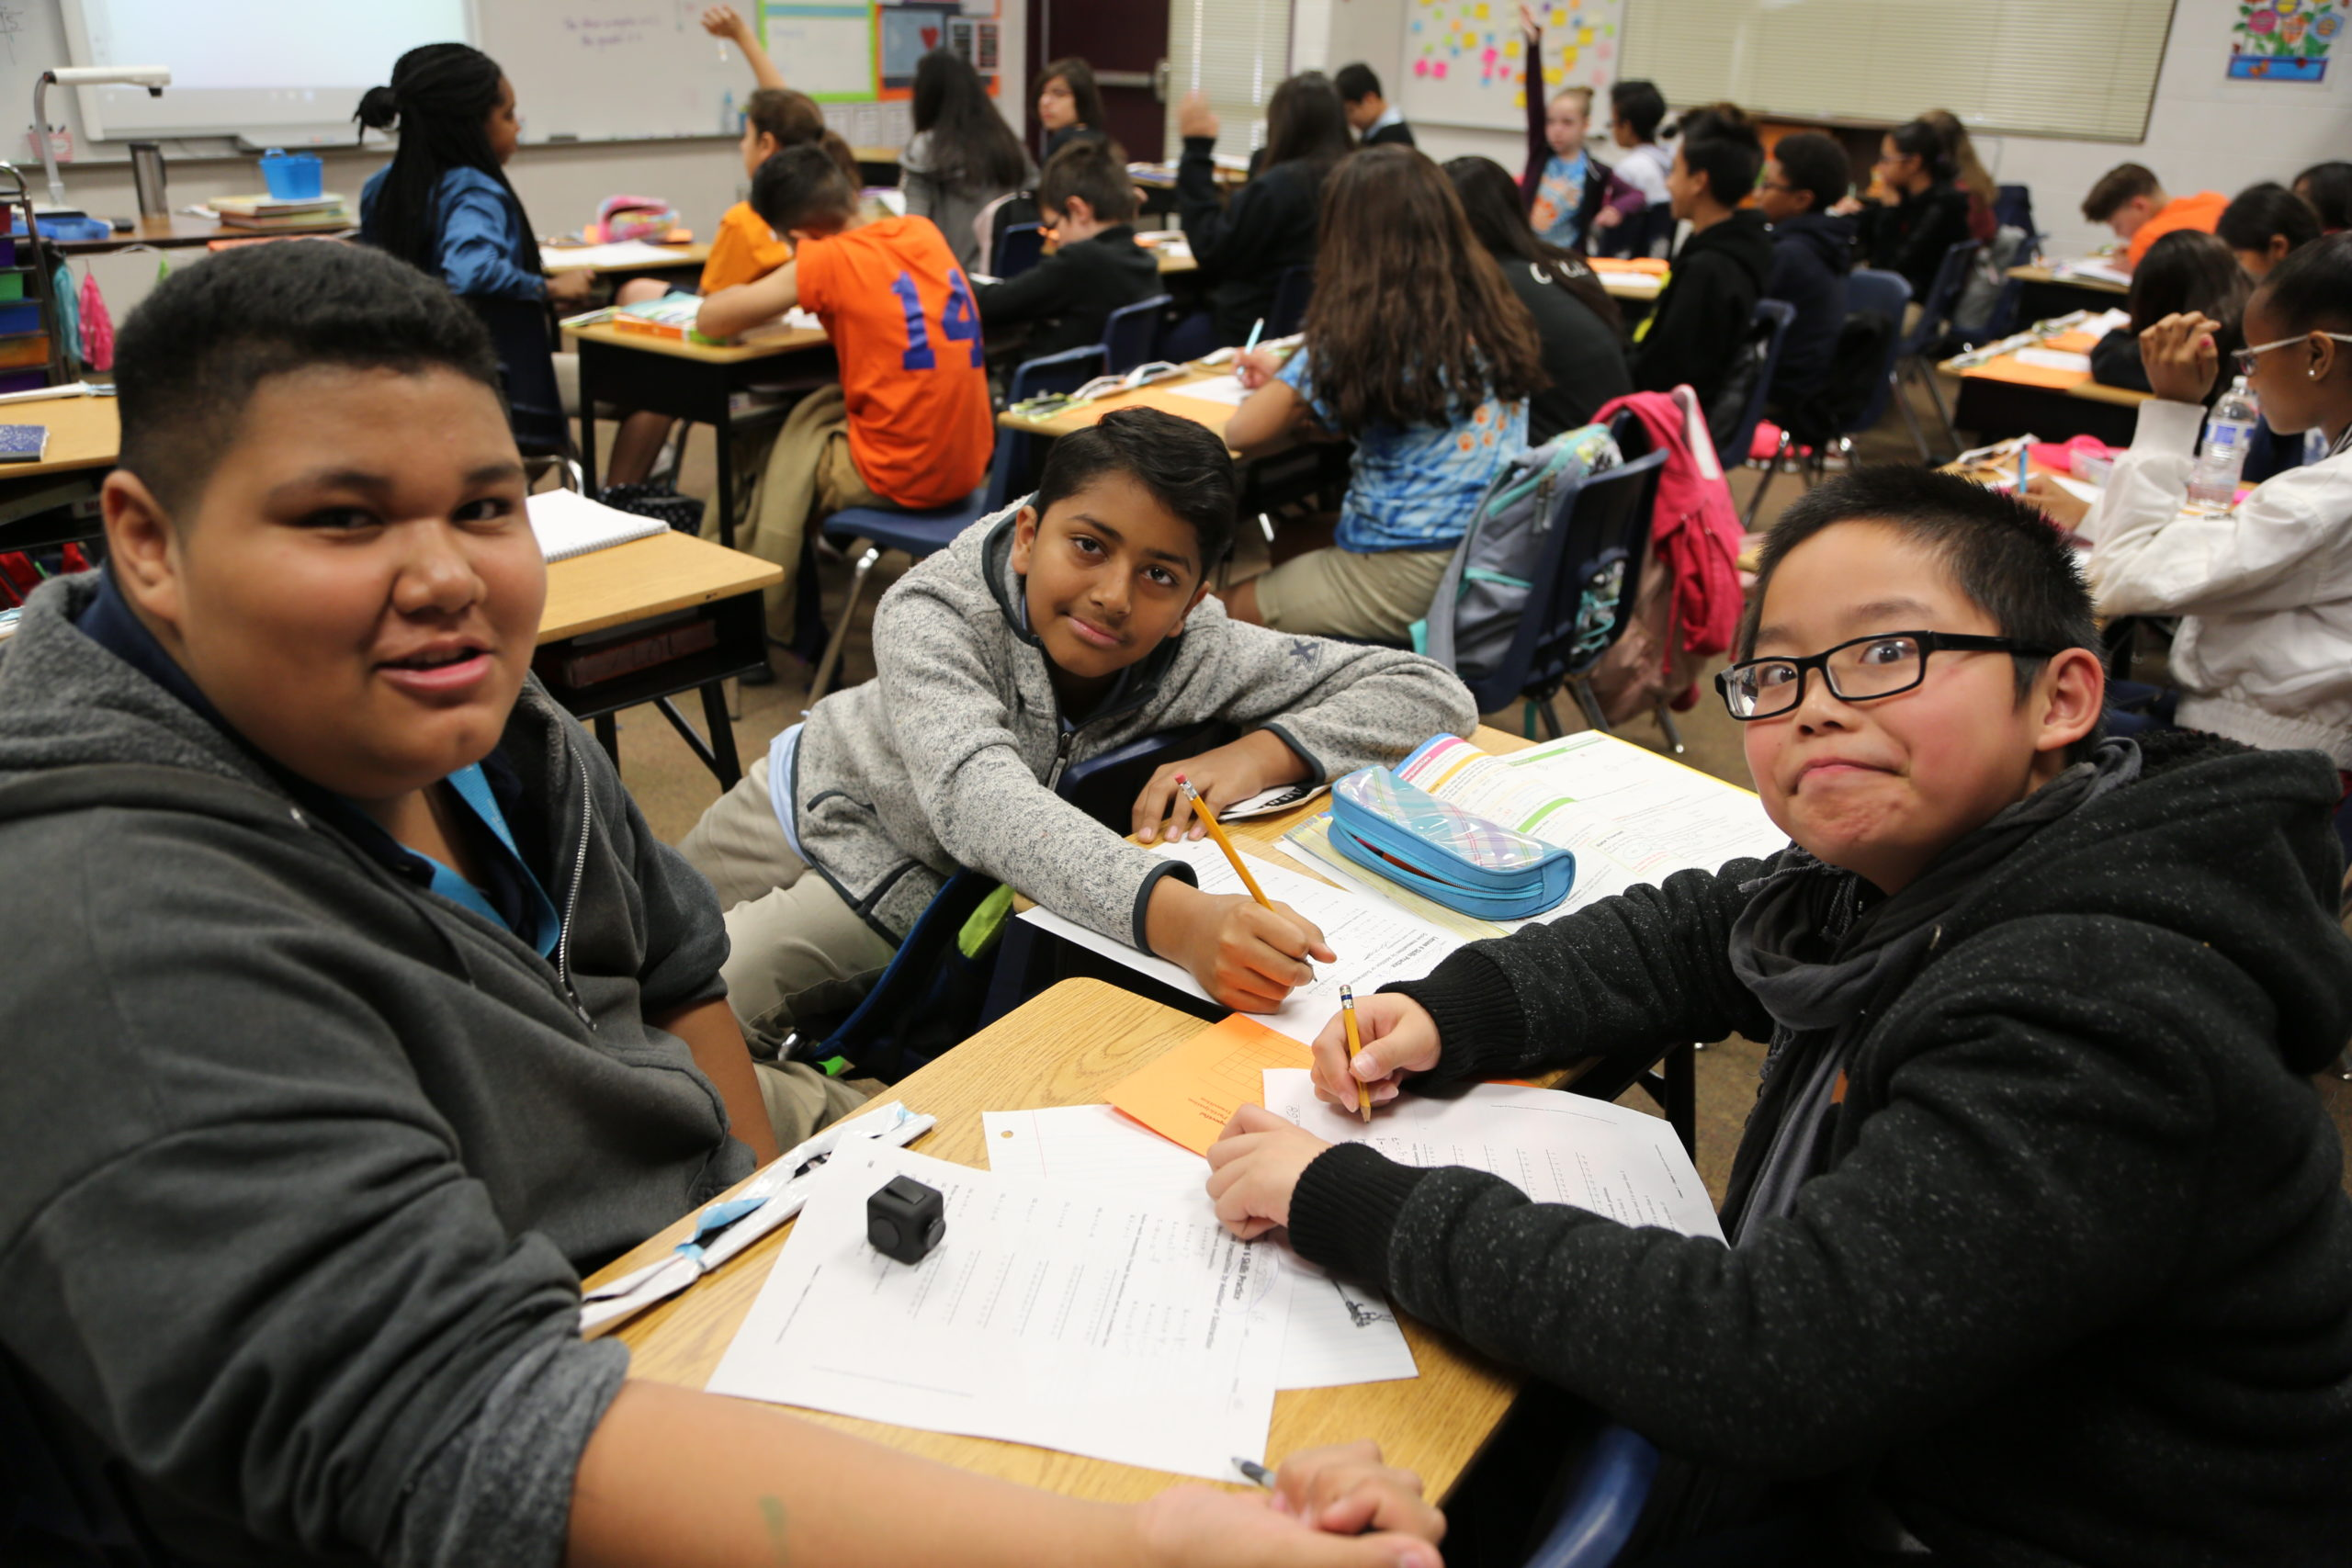 Del Vista Sur Accelerated Academy Students Working On A Classroom Project Toghether. Photo By Brooke Martinez/ AZEdNews